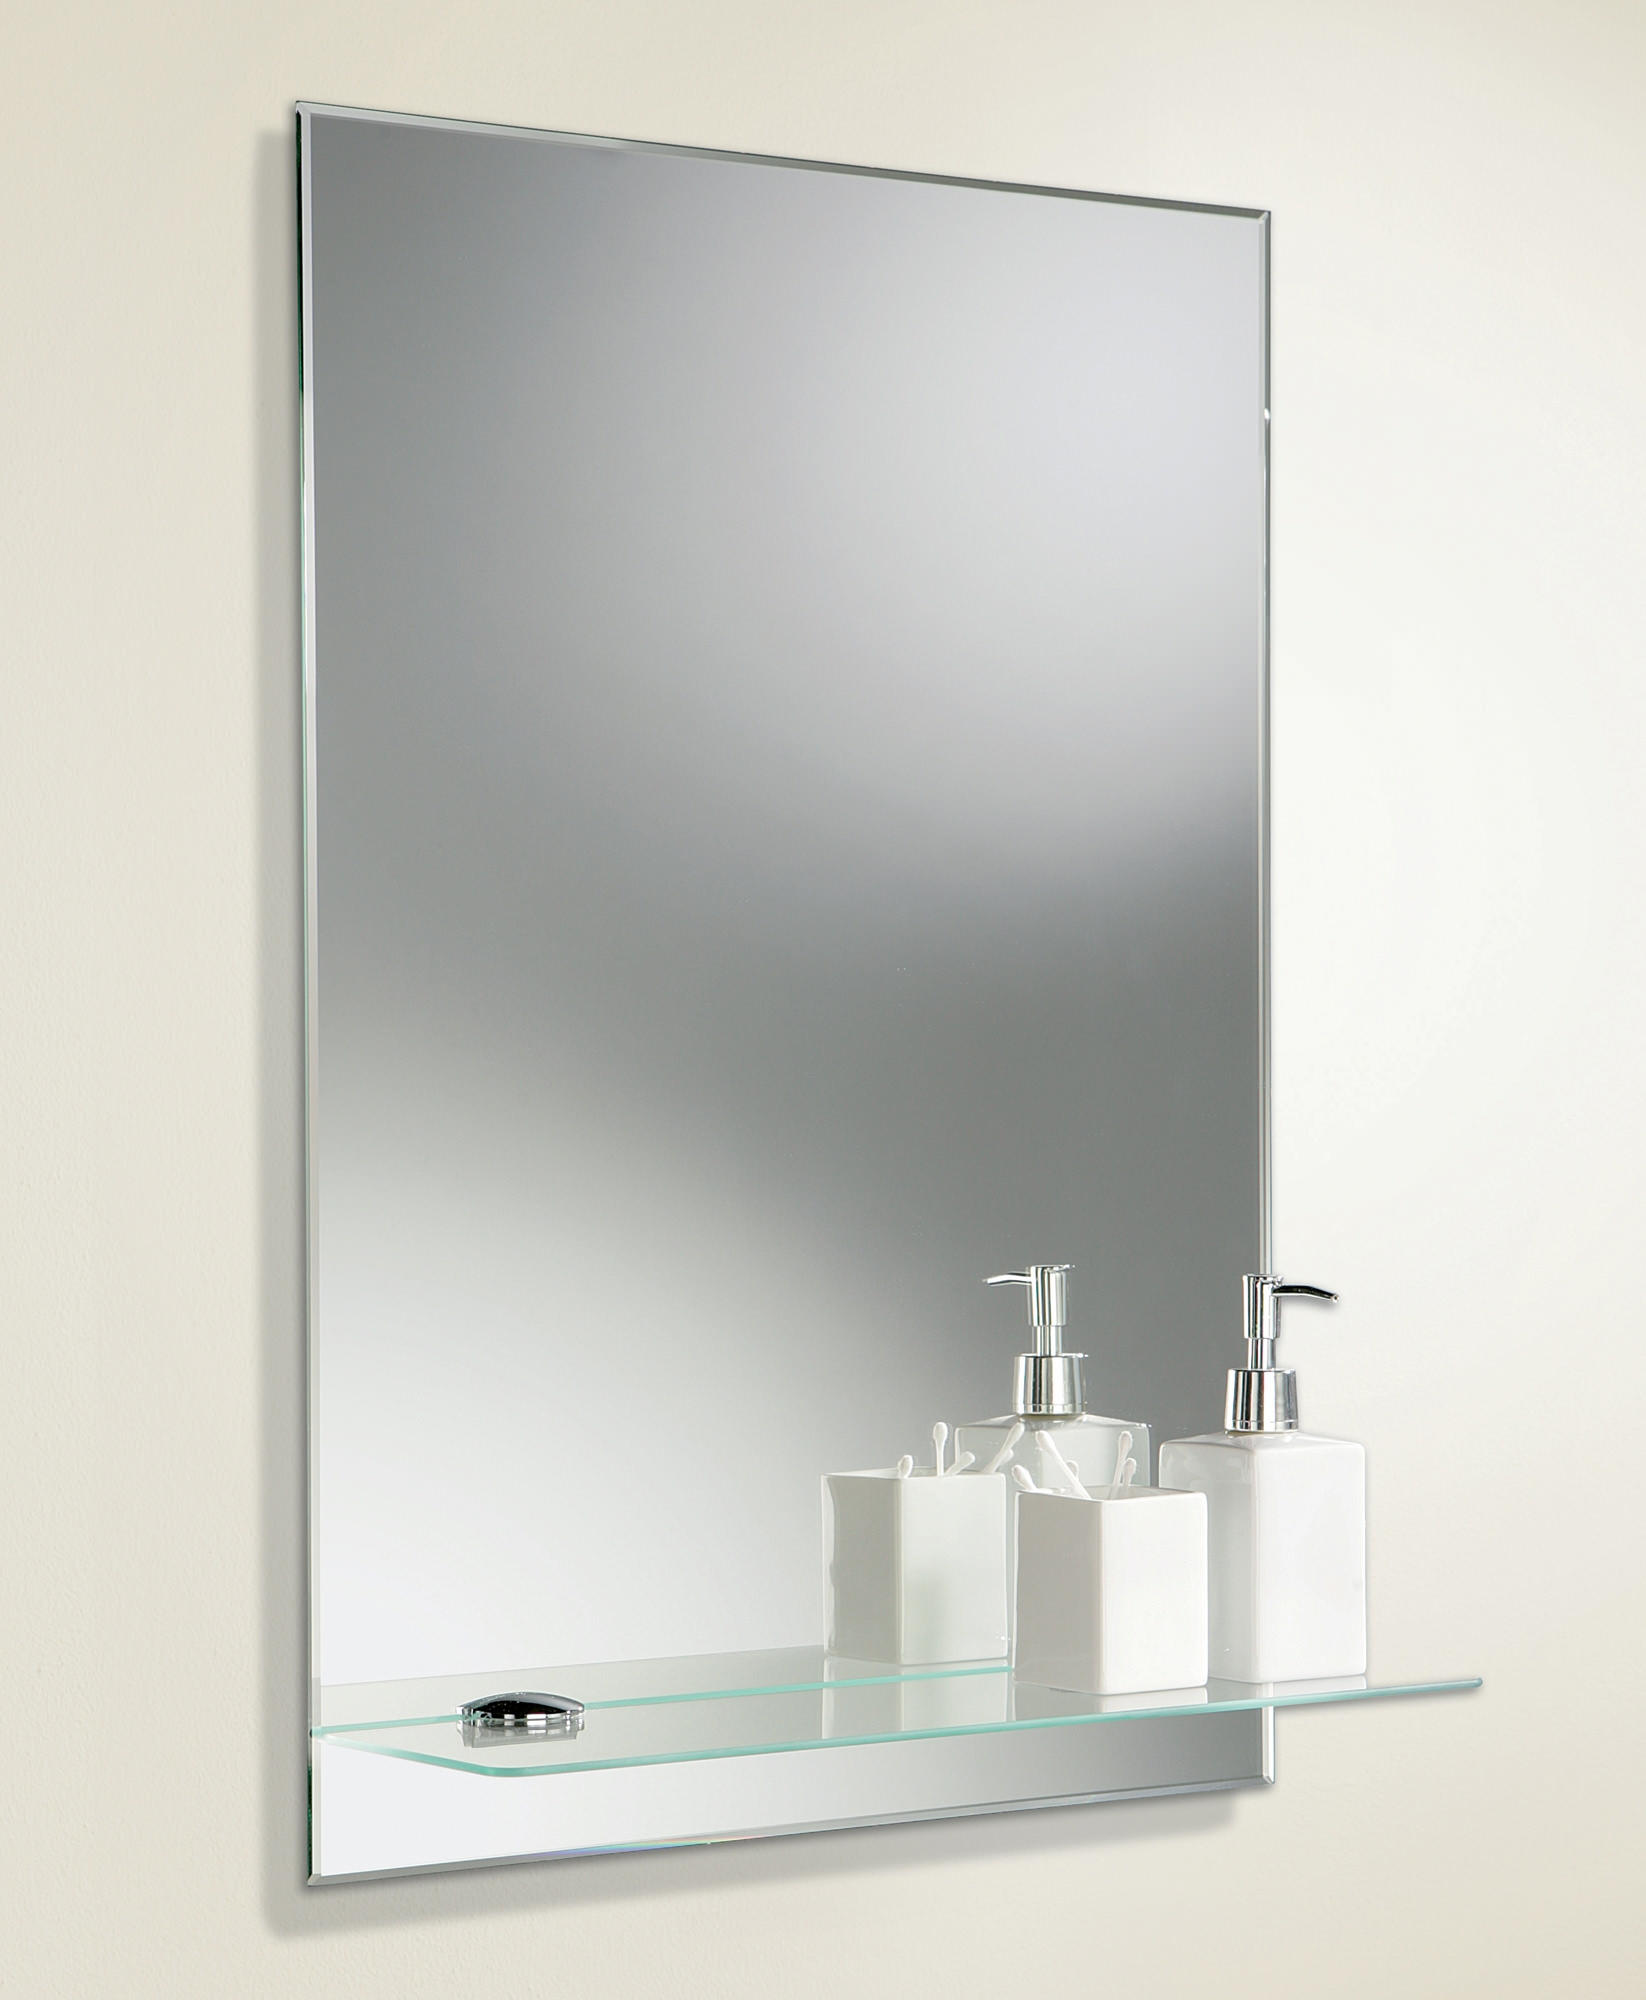 Hib Del Rectangular Bevelled Edge Mirror With Glass Shelf 72026000 Pertaining To Bevelled Glass Mirror (Image 9 of 15)